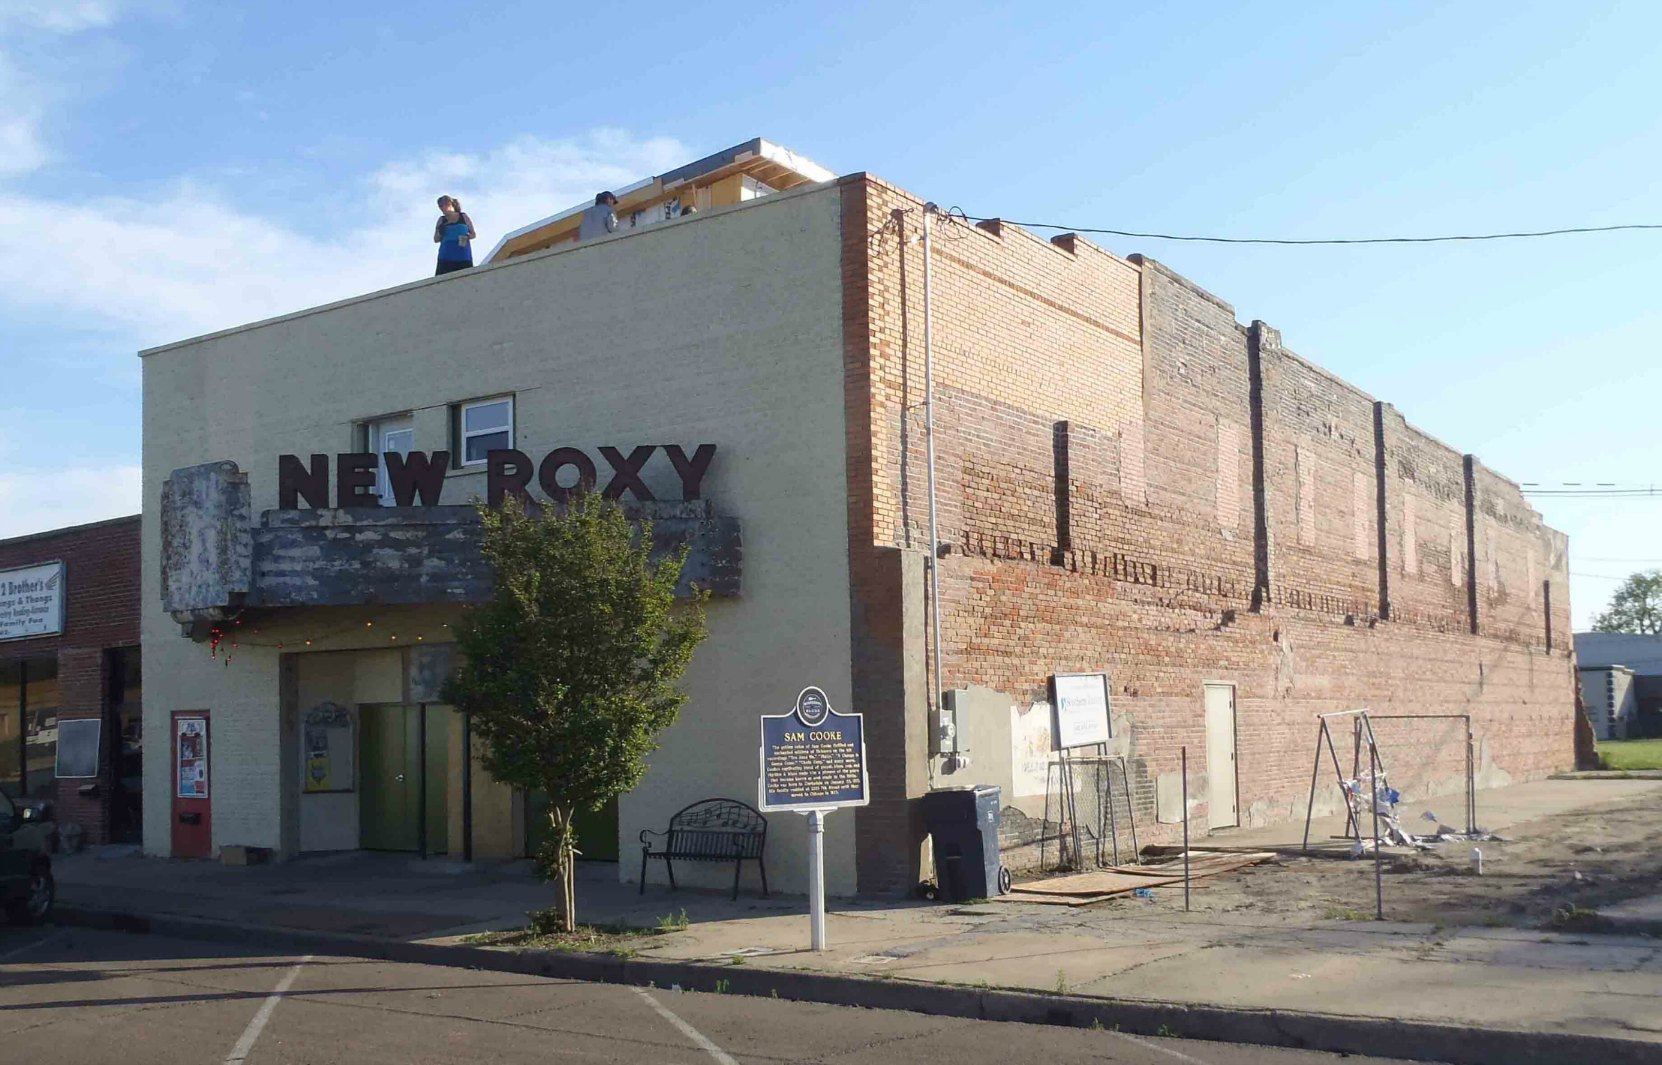 The New Roxy Theatre, Clarksdale, Mississippi